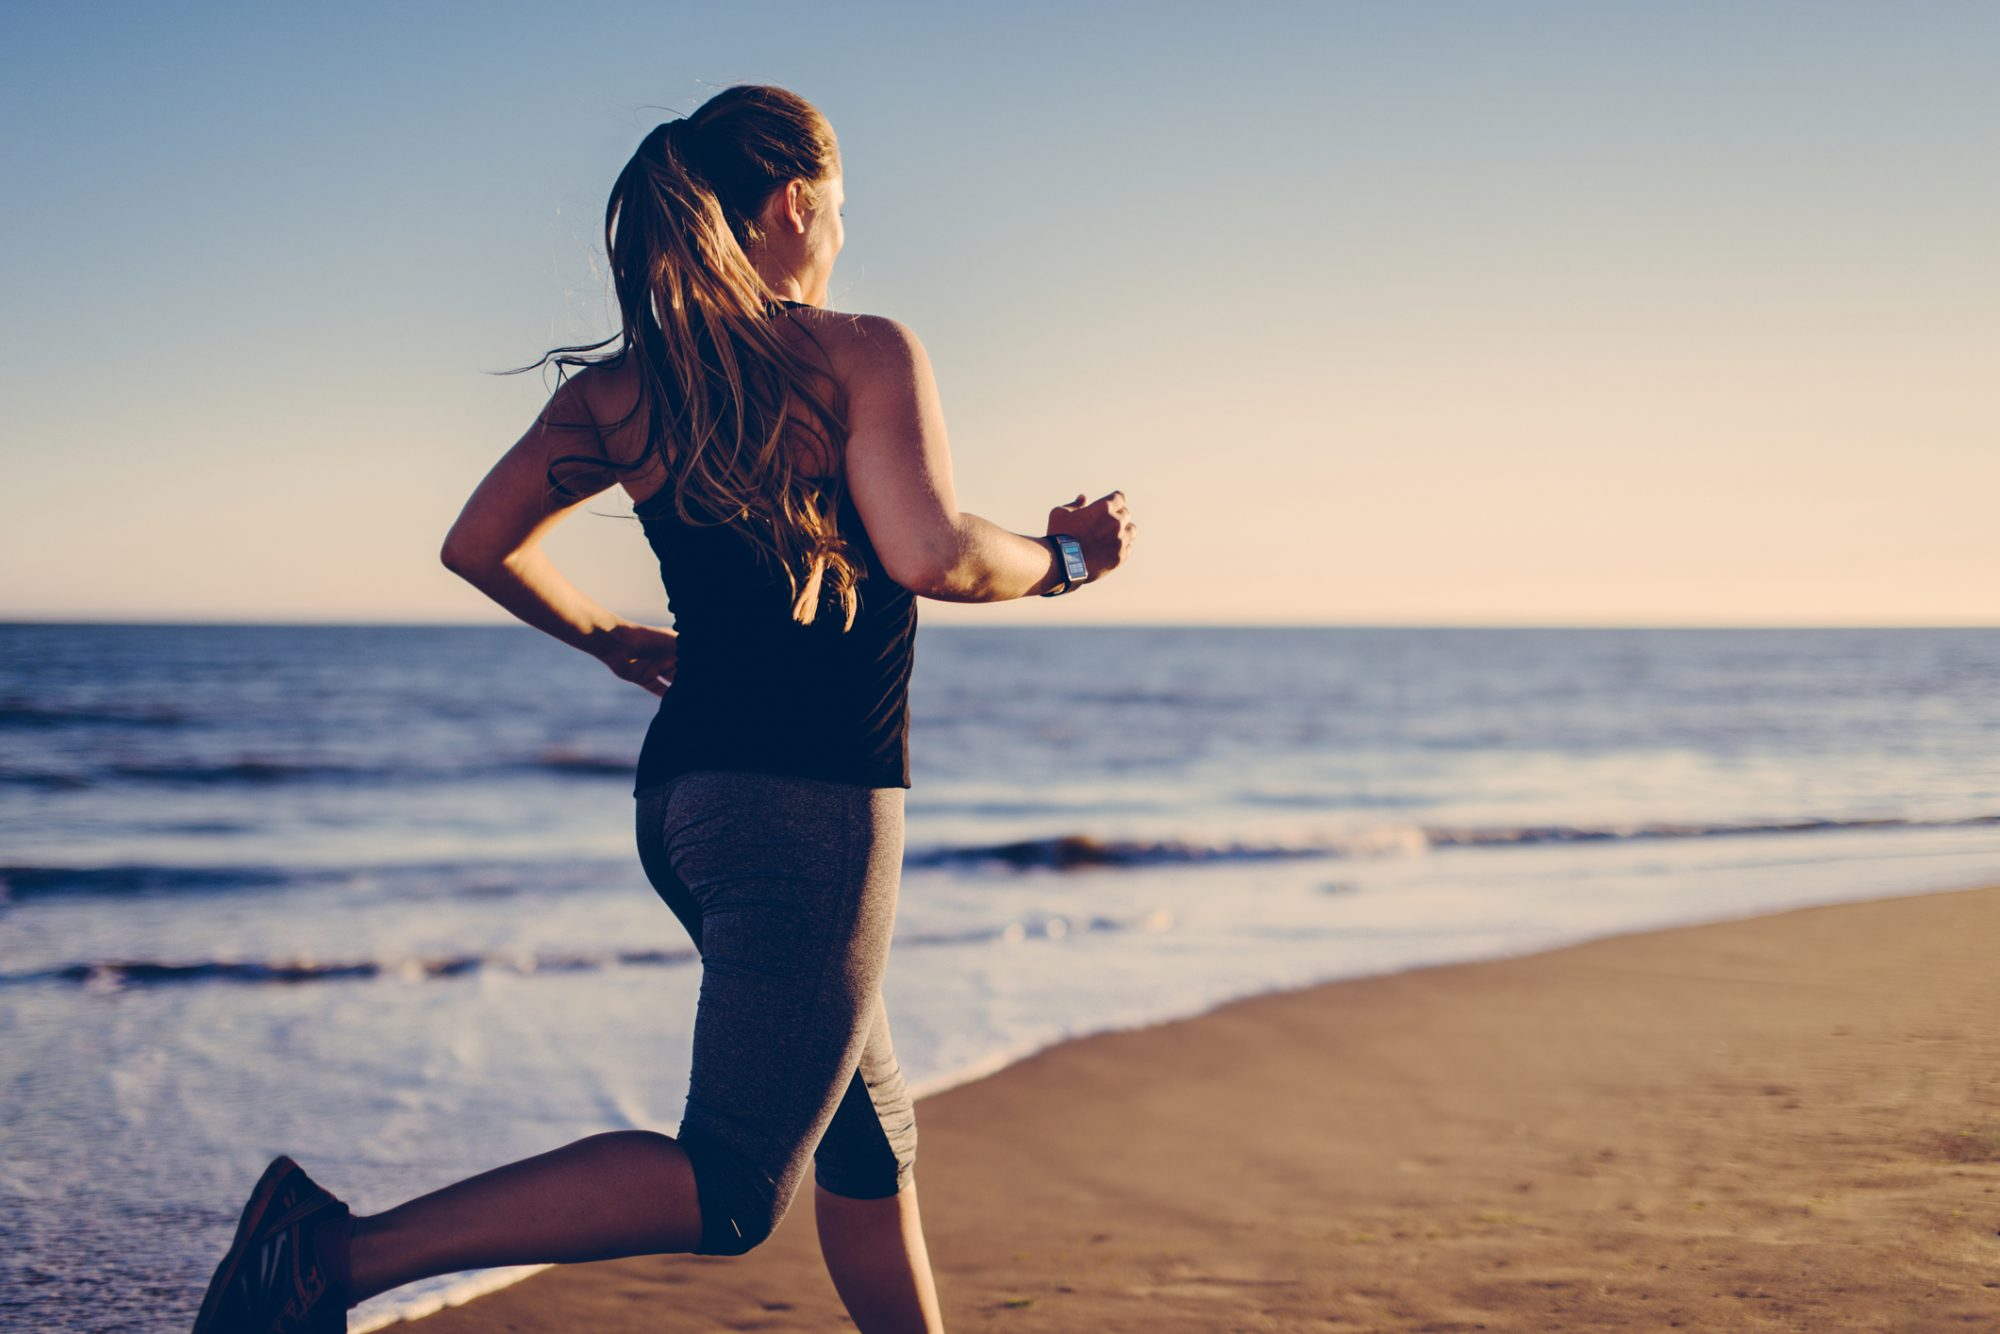 Workout quotes - woman running